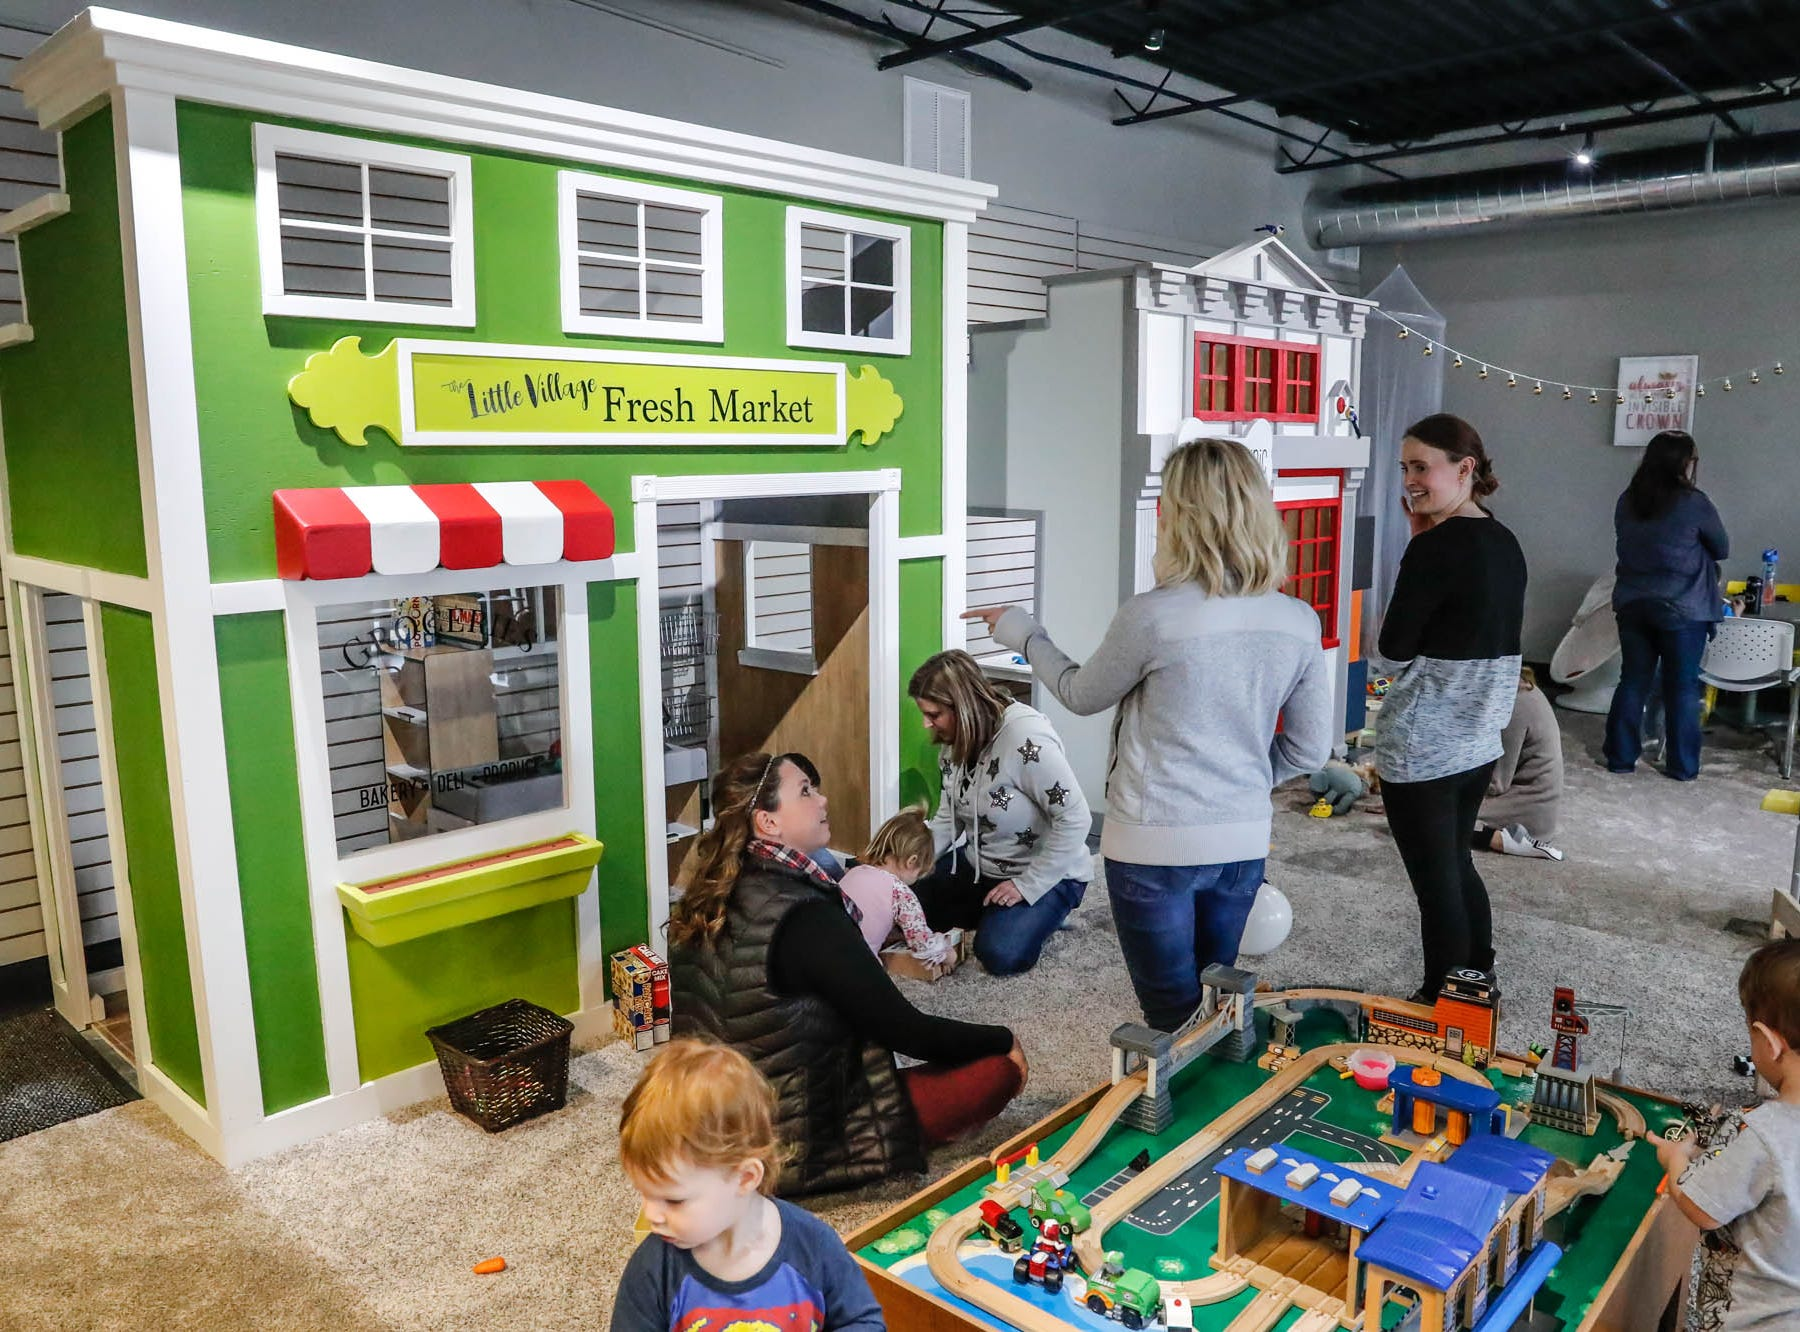 Caregivers and children play in The Little Fresh Market play house at The Little Village Playroom, 9850 N. Michigan Rd, Carmel, Ind., on Tuesday, Feb. 5, 2019. The Play Room offers caregivers offers free coffee and free wifi to work or check emails.